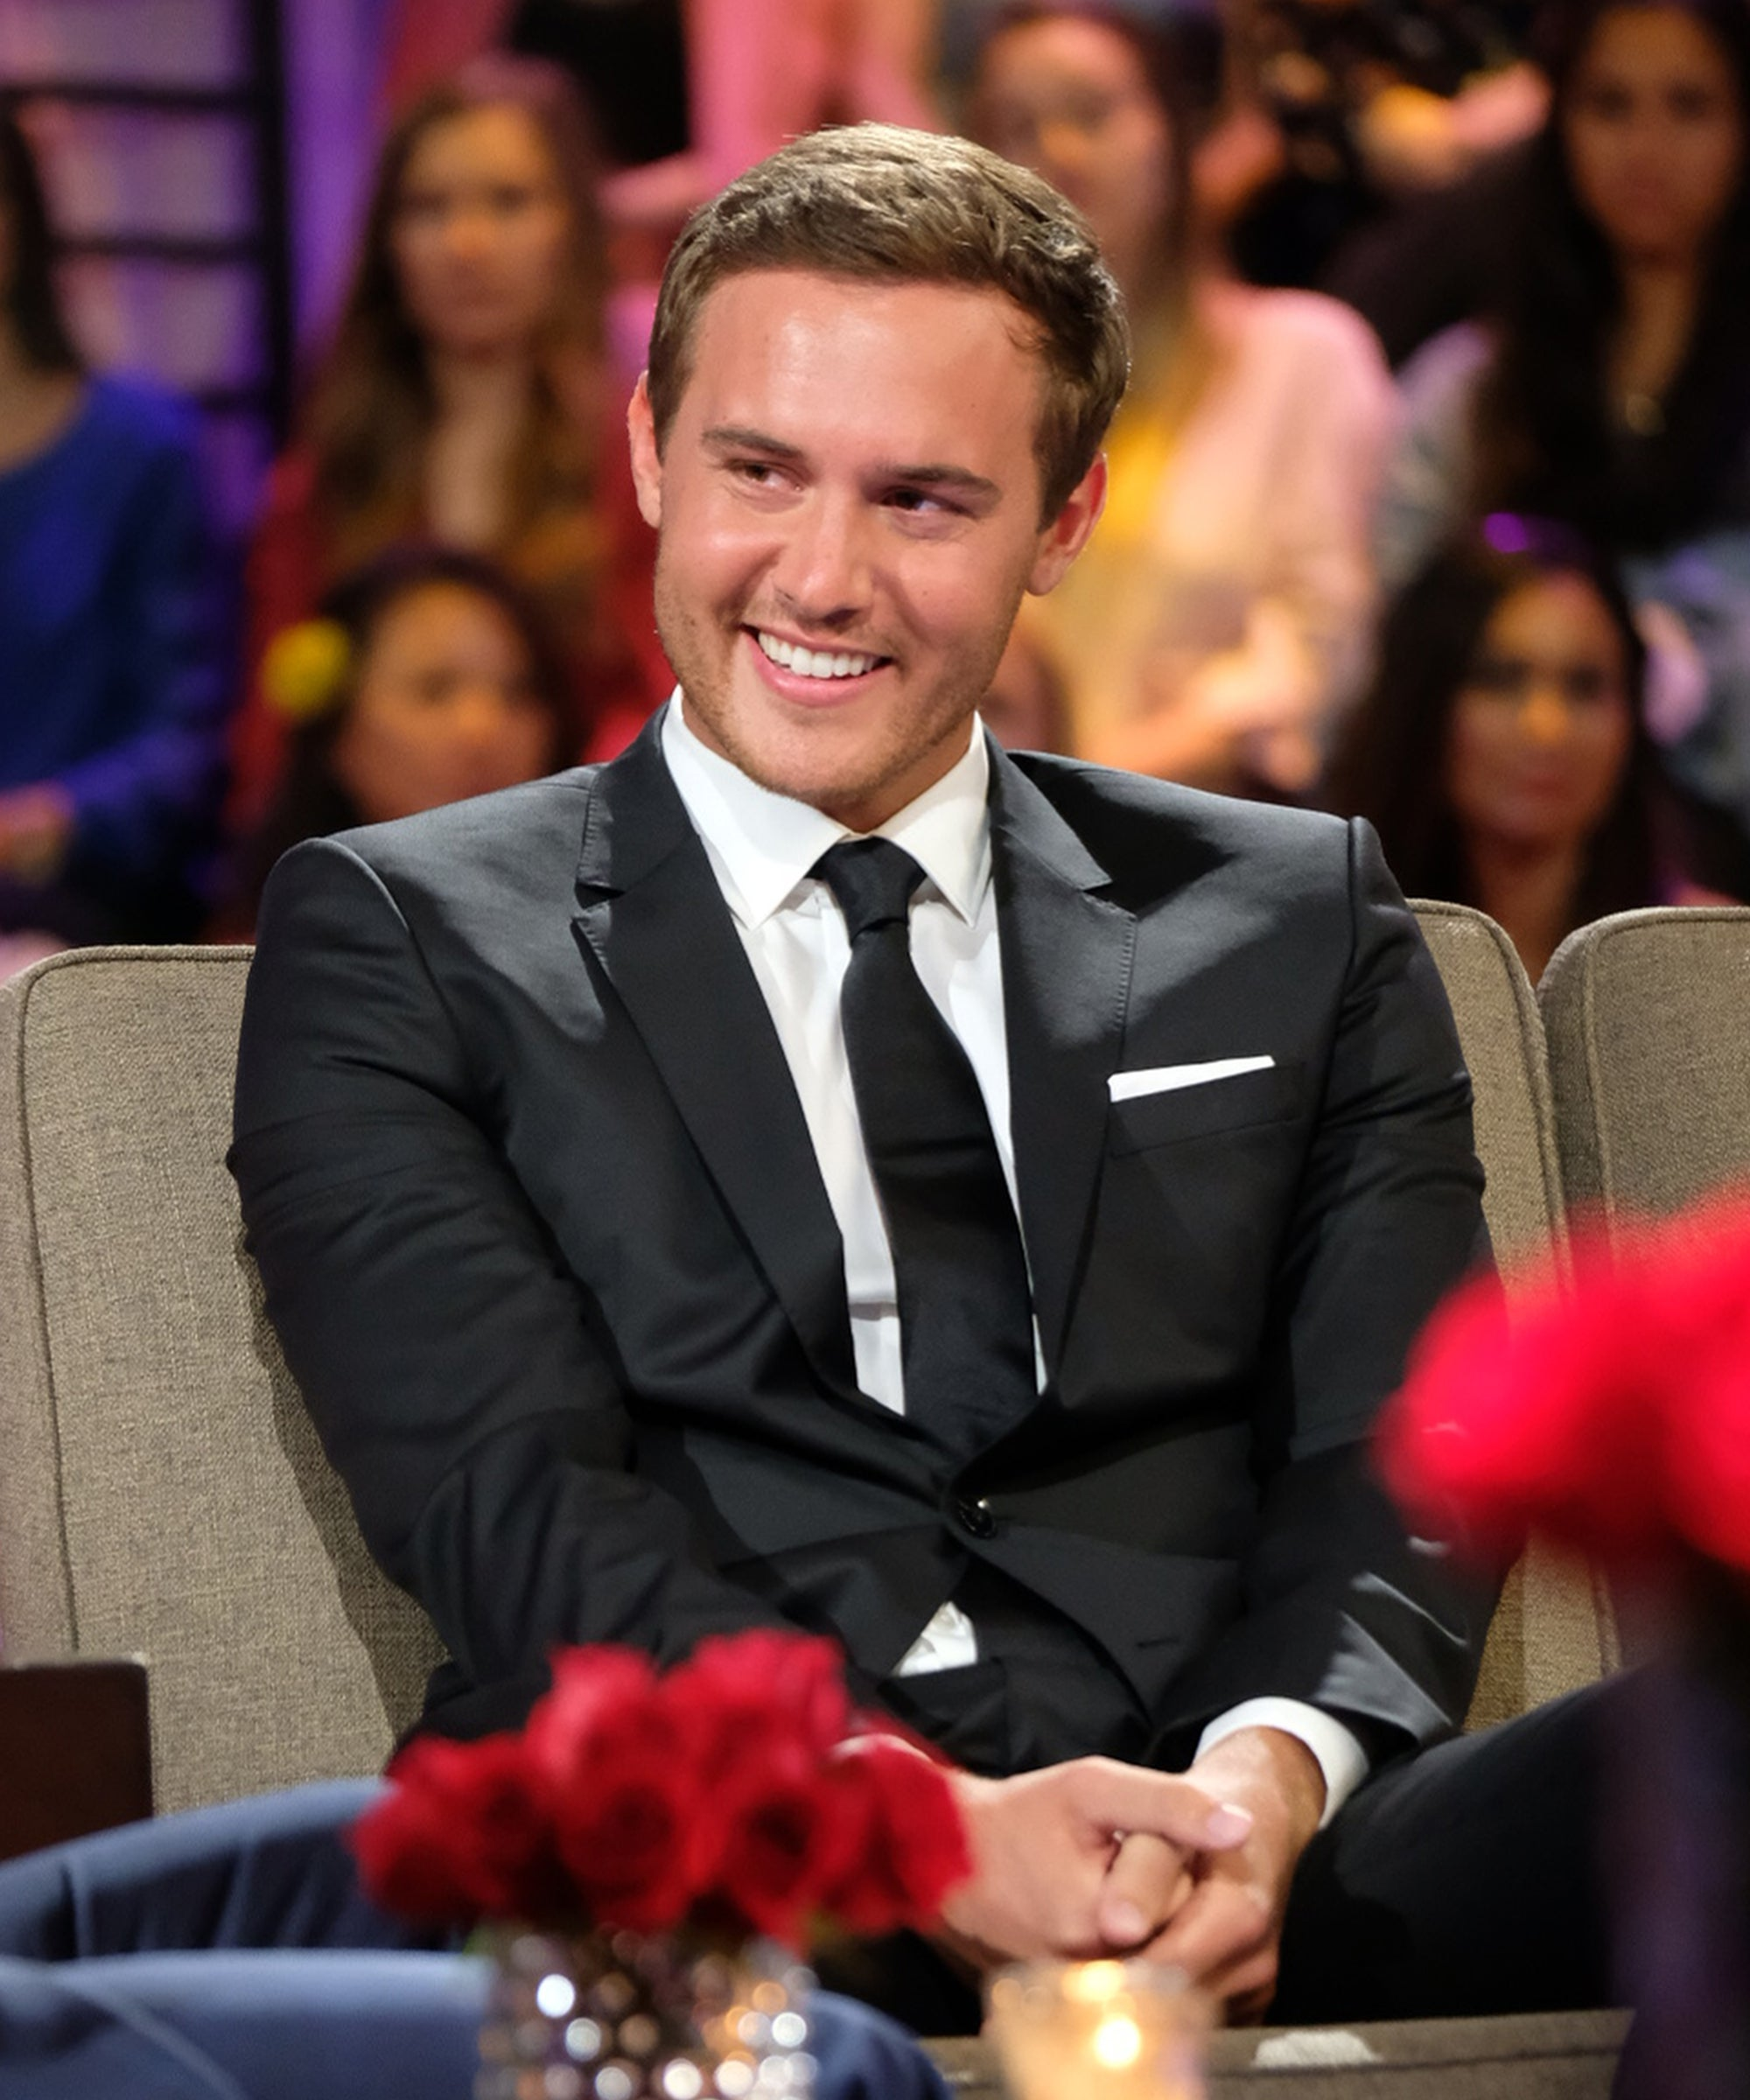 When Does Peter's Bachelor Start Filming & Is That New Cast List Final? Asking For A Friend!